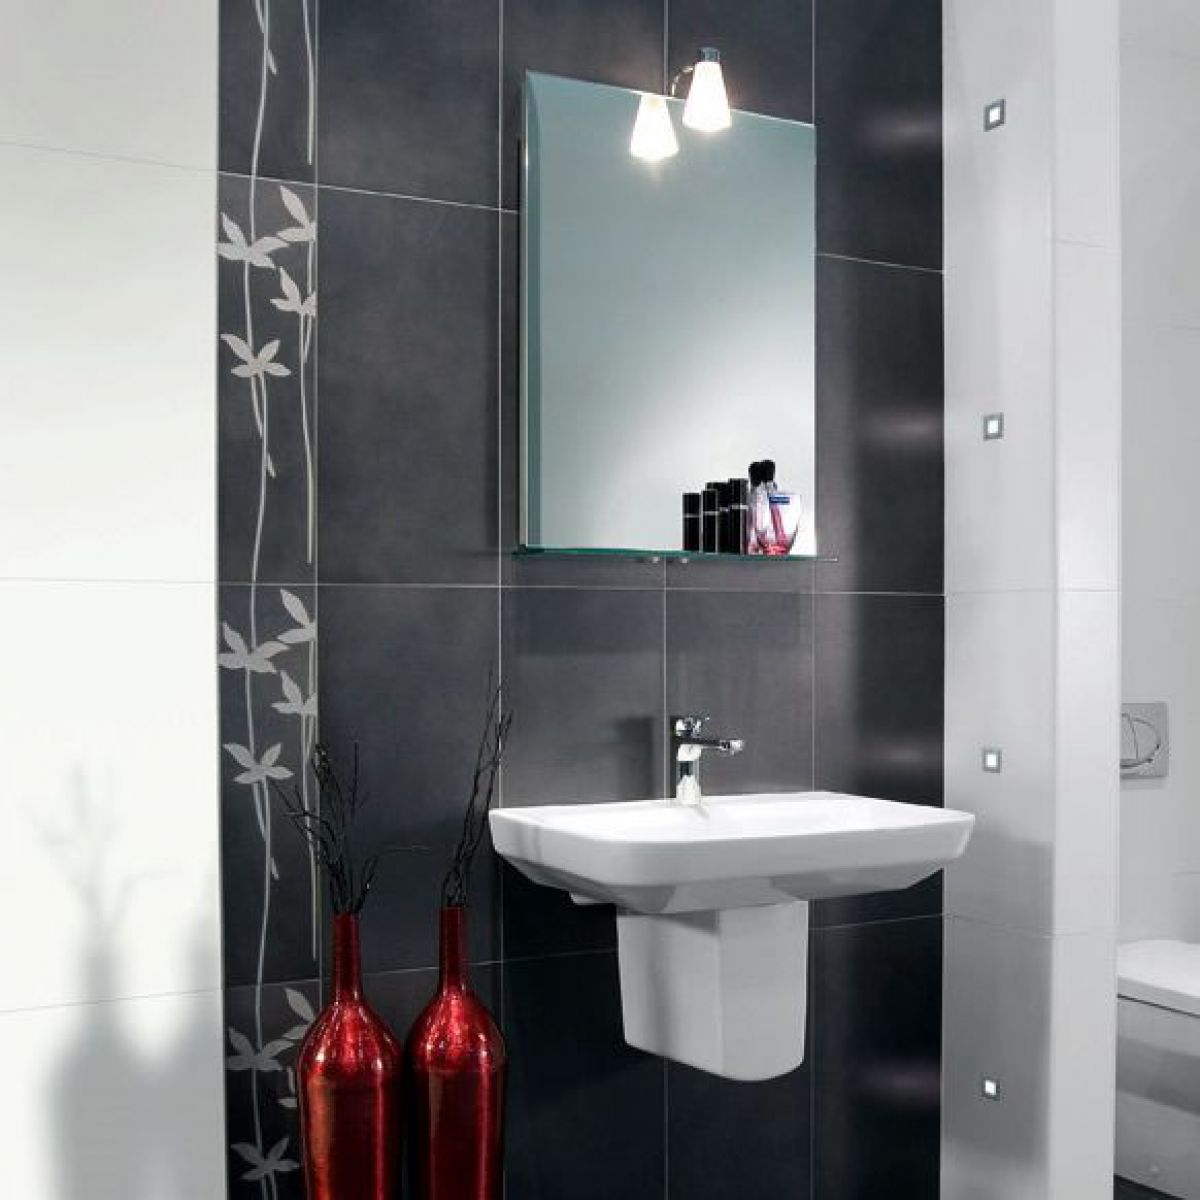 villeroy and boch bathroom tiles villeroy amp boch decor tile 2413 15 x 60cm uk 24494